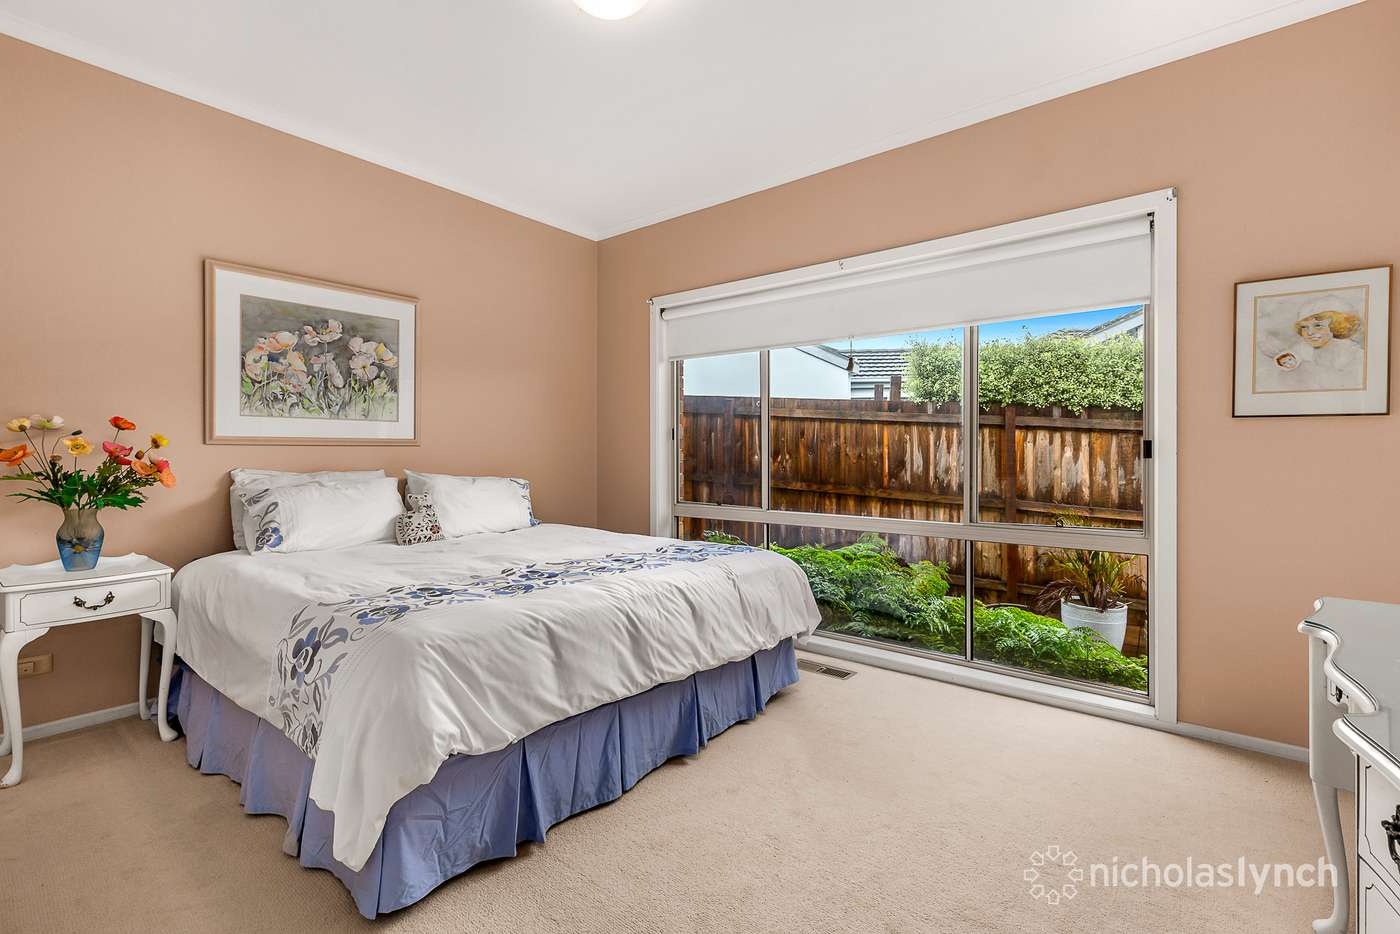 Fifth view of Homely house listing, 10 Cranswick Court, Mornington VIC 3931